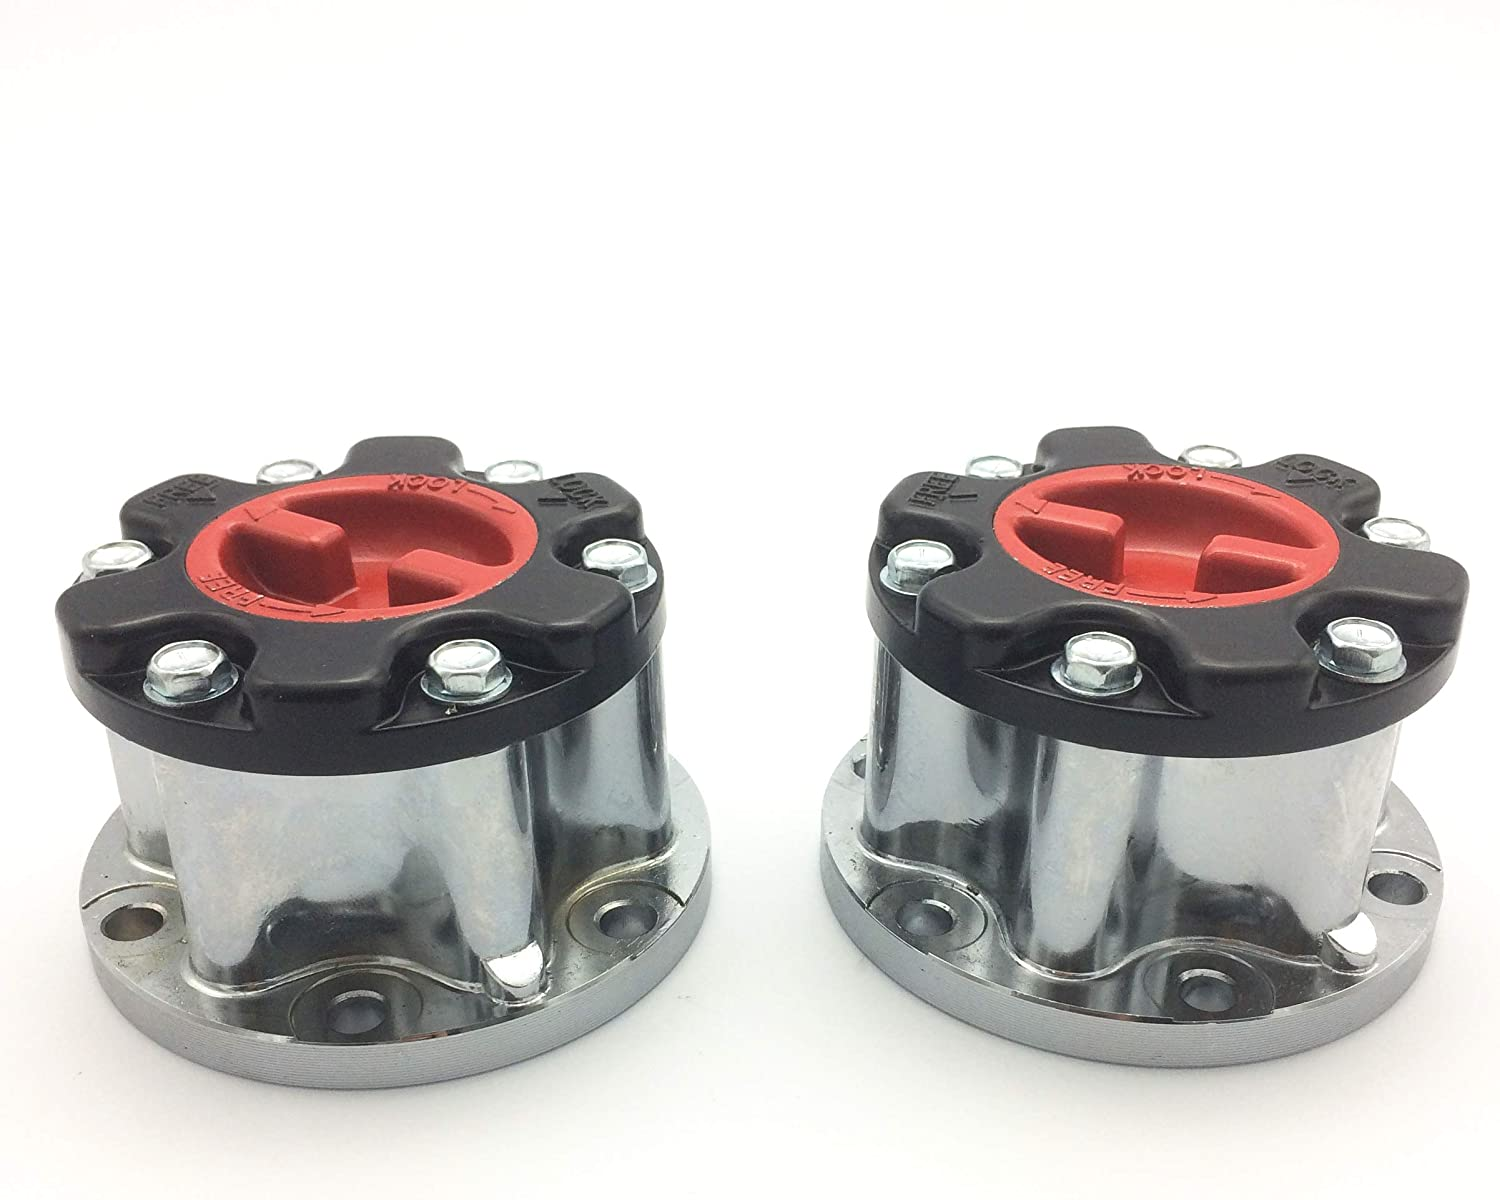 JSD X2 Pcs Manual Wheel Locking Hub fit for Toyota 4Runner 1986-1995 T100 1993-1998 43509-35030